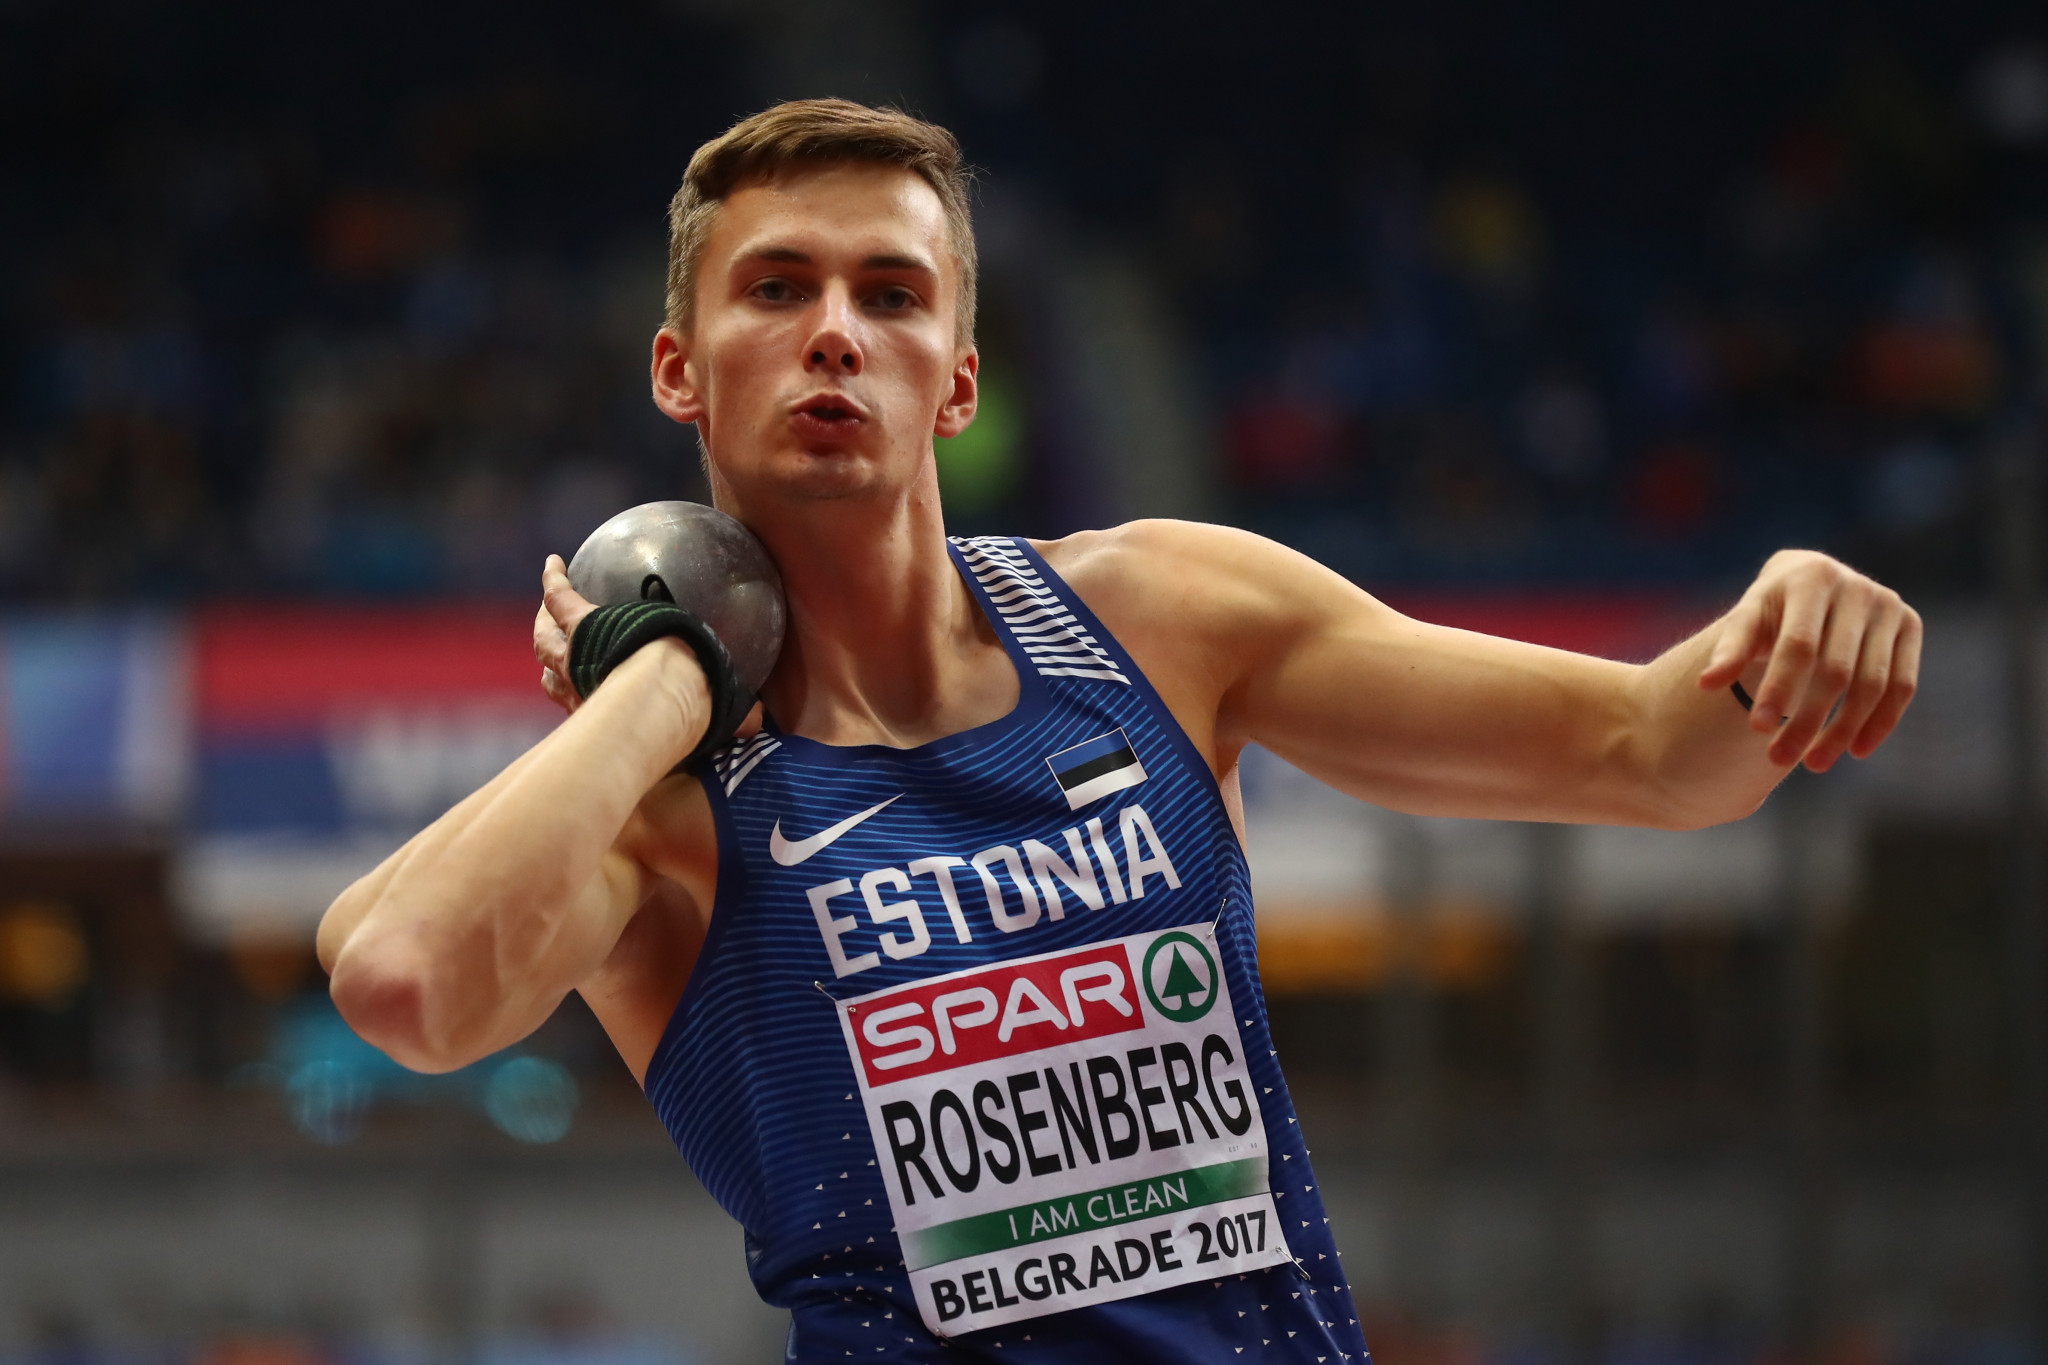 Estonia's Kristjan Rosenberg is the surprise leader after the first day of decathlon action ©Getty Images